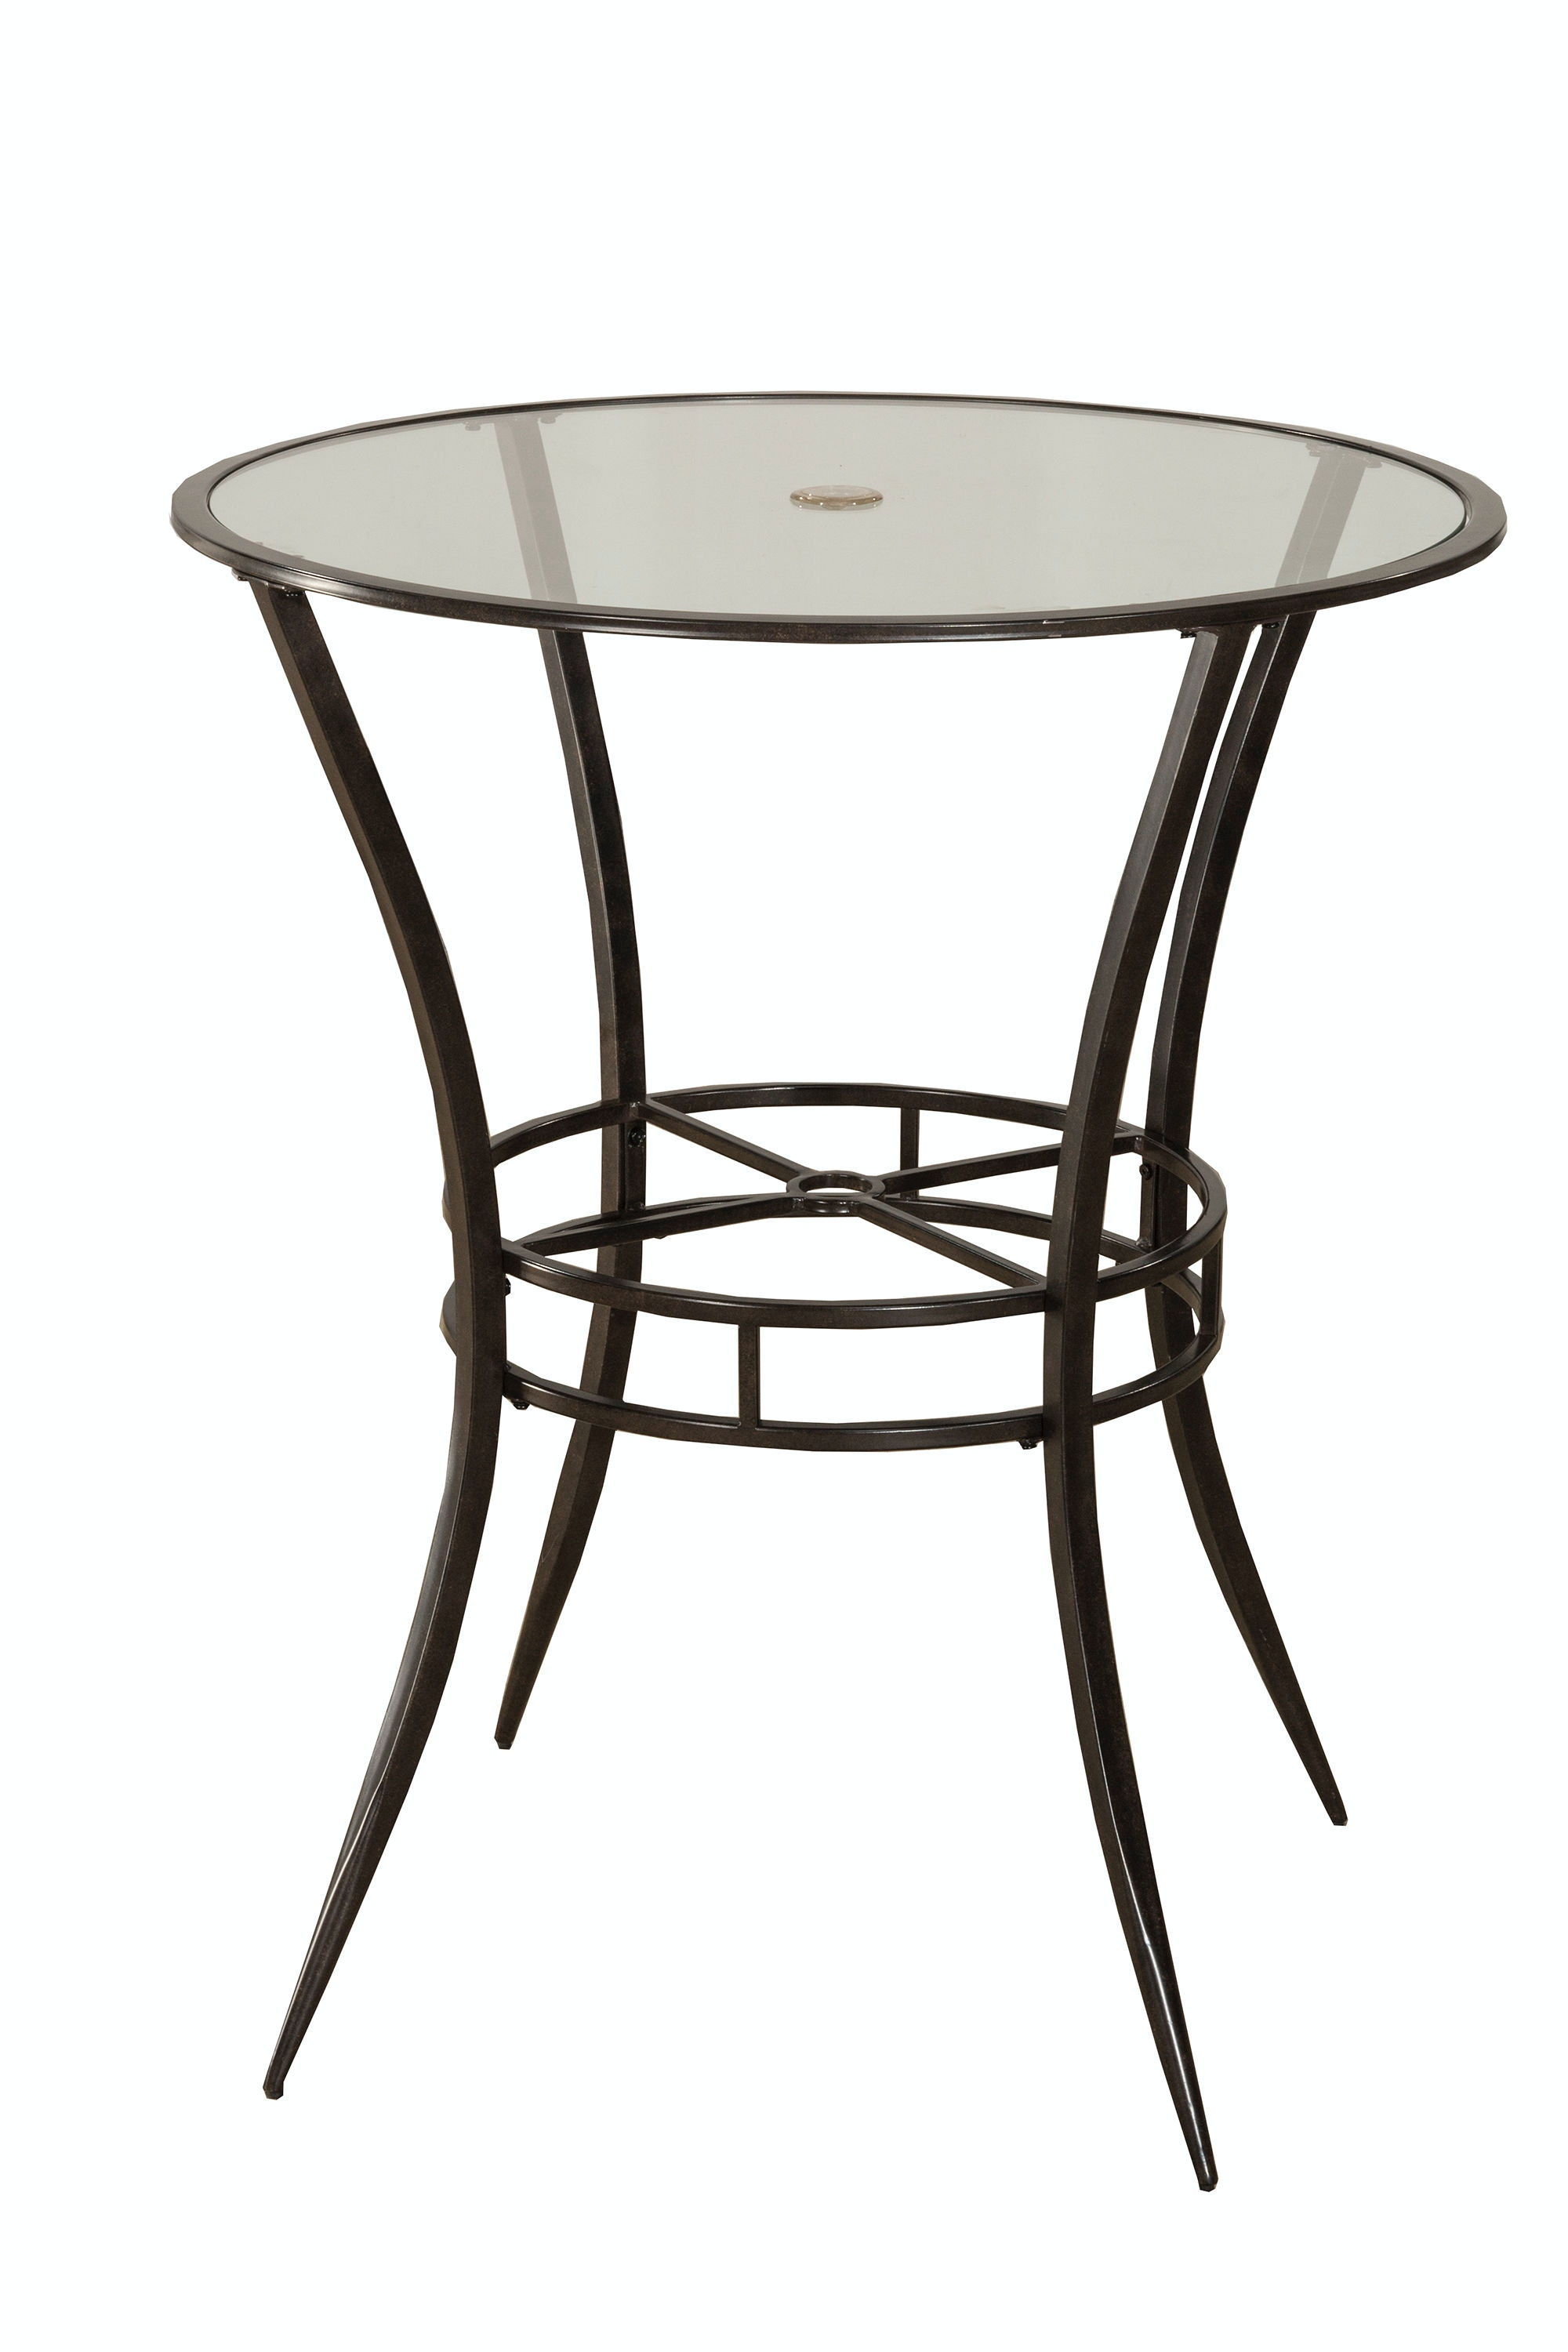 Hillsdale Furniture Outdoor/Patio Indoor/Outdoor Bar Height Bistro Table  6323PTB At Carol House